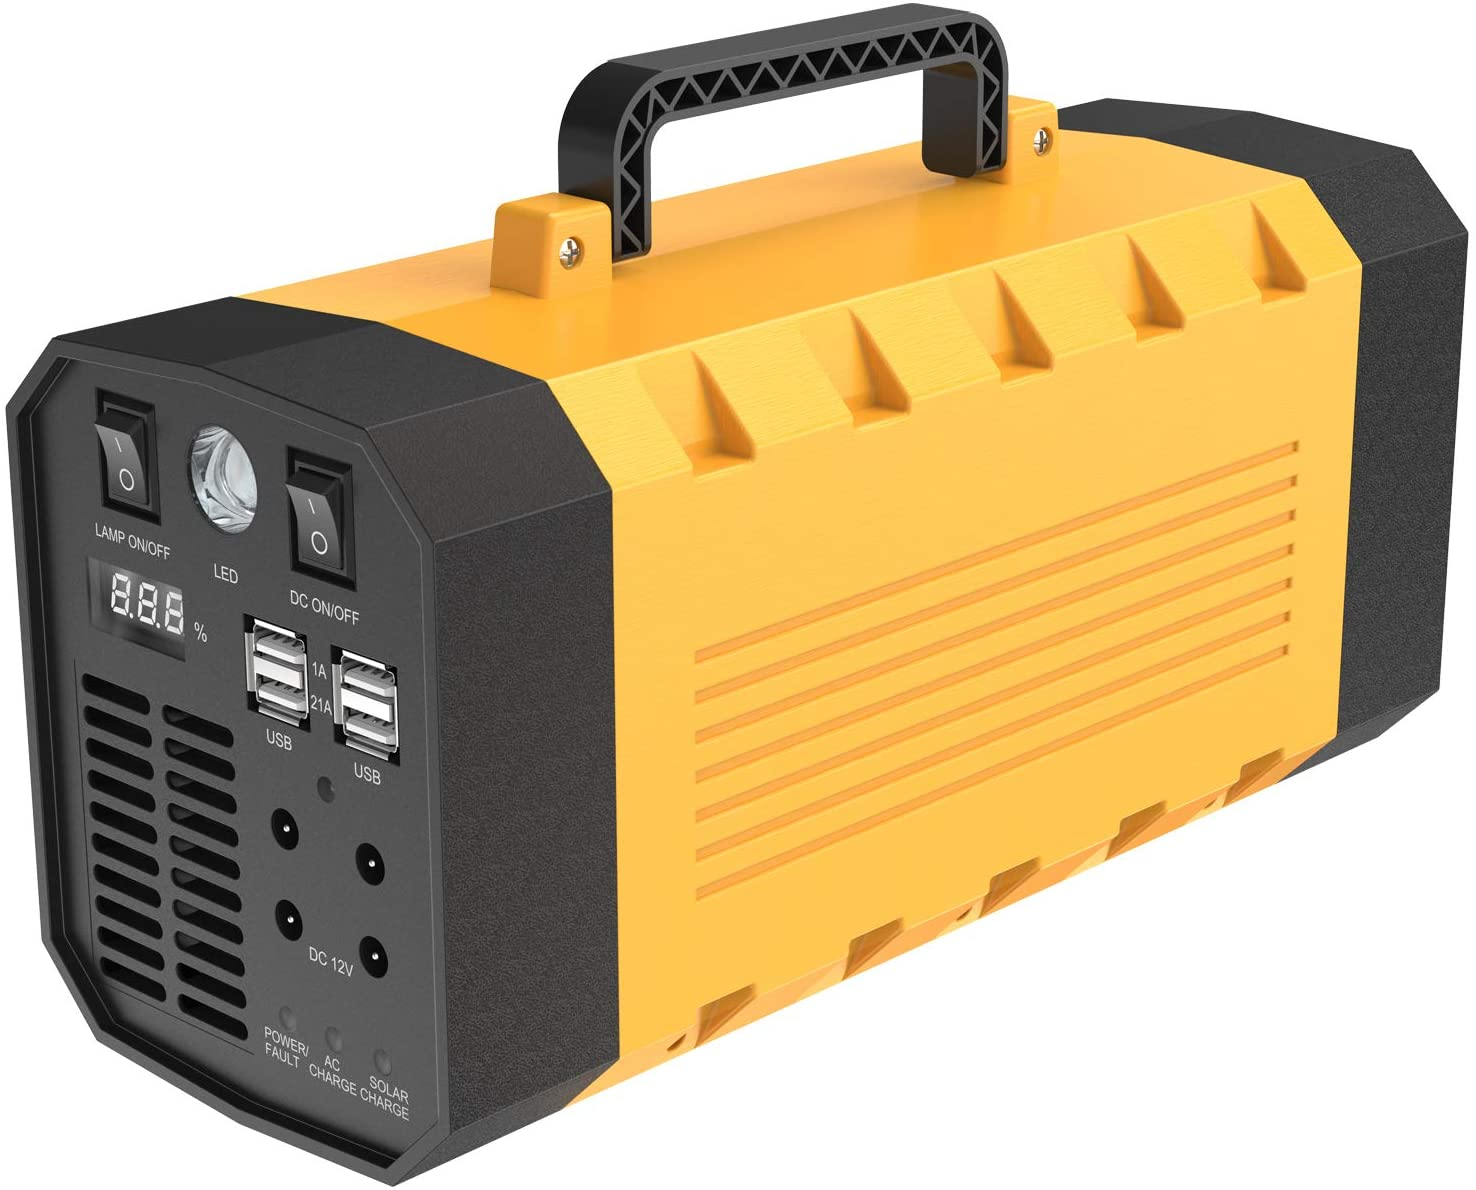 Subroad Portable Solar Generator 500W 288W Rechargeable Lithium Battery Pack Backup Power AC Out 12V USB Output Multifunctional Emergency Power for CPAP Backup Camping Emergency